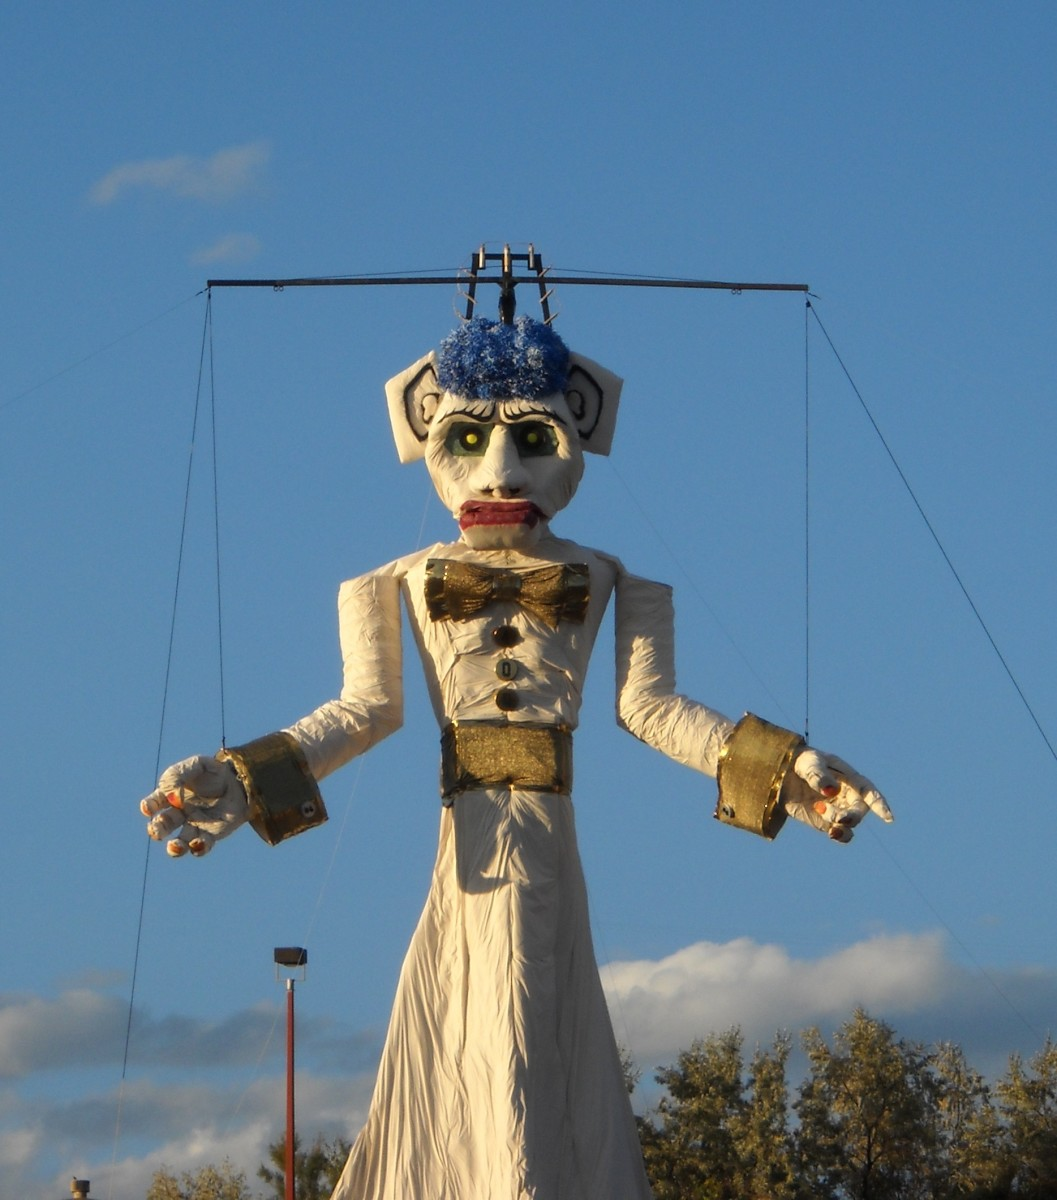 The Burning of Zozobra